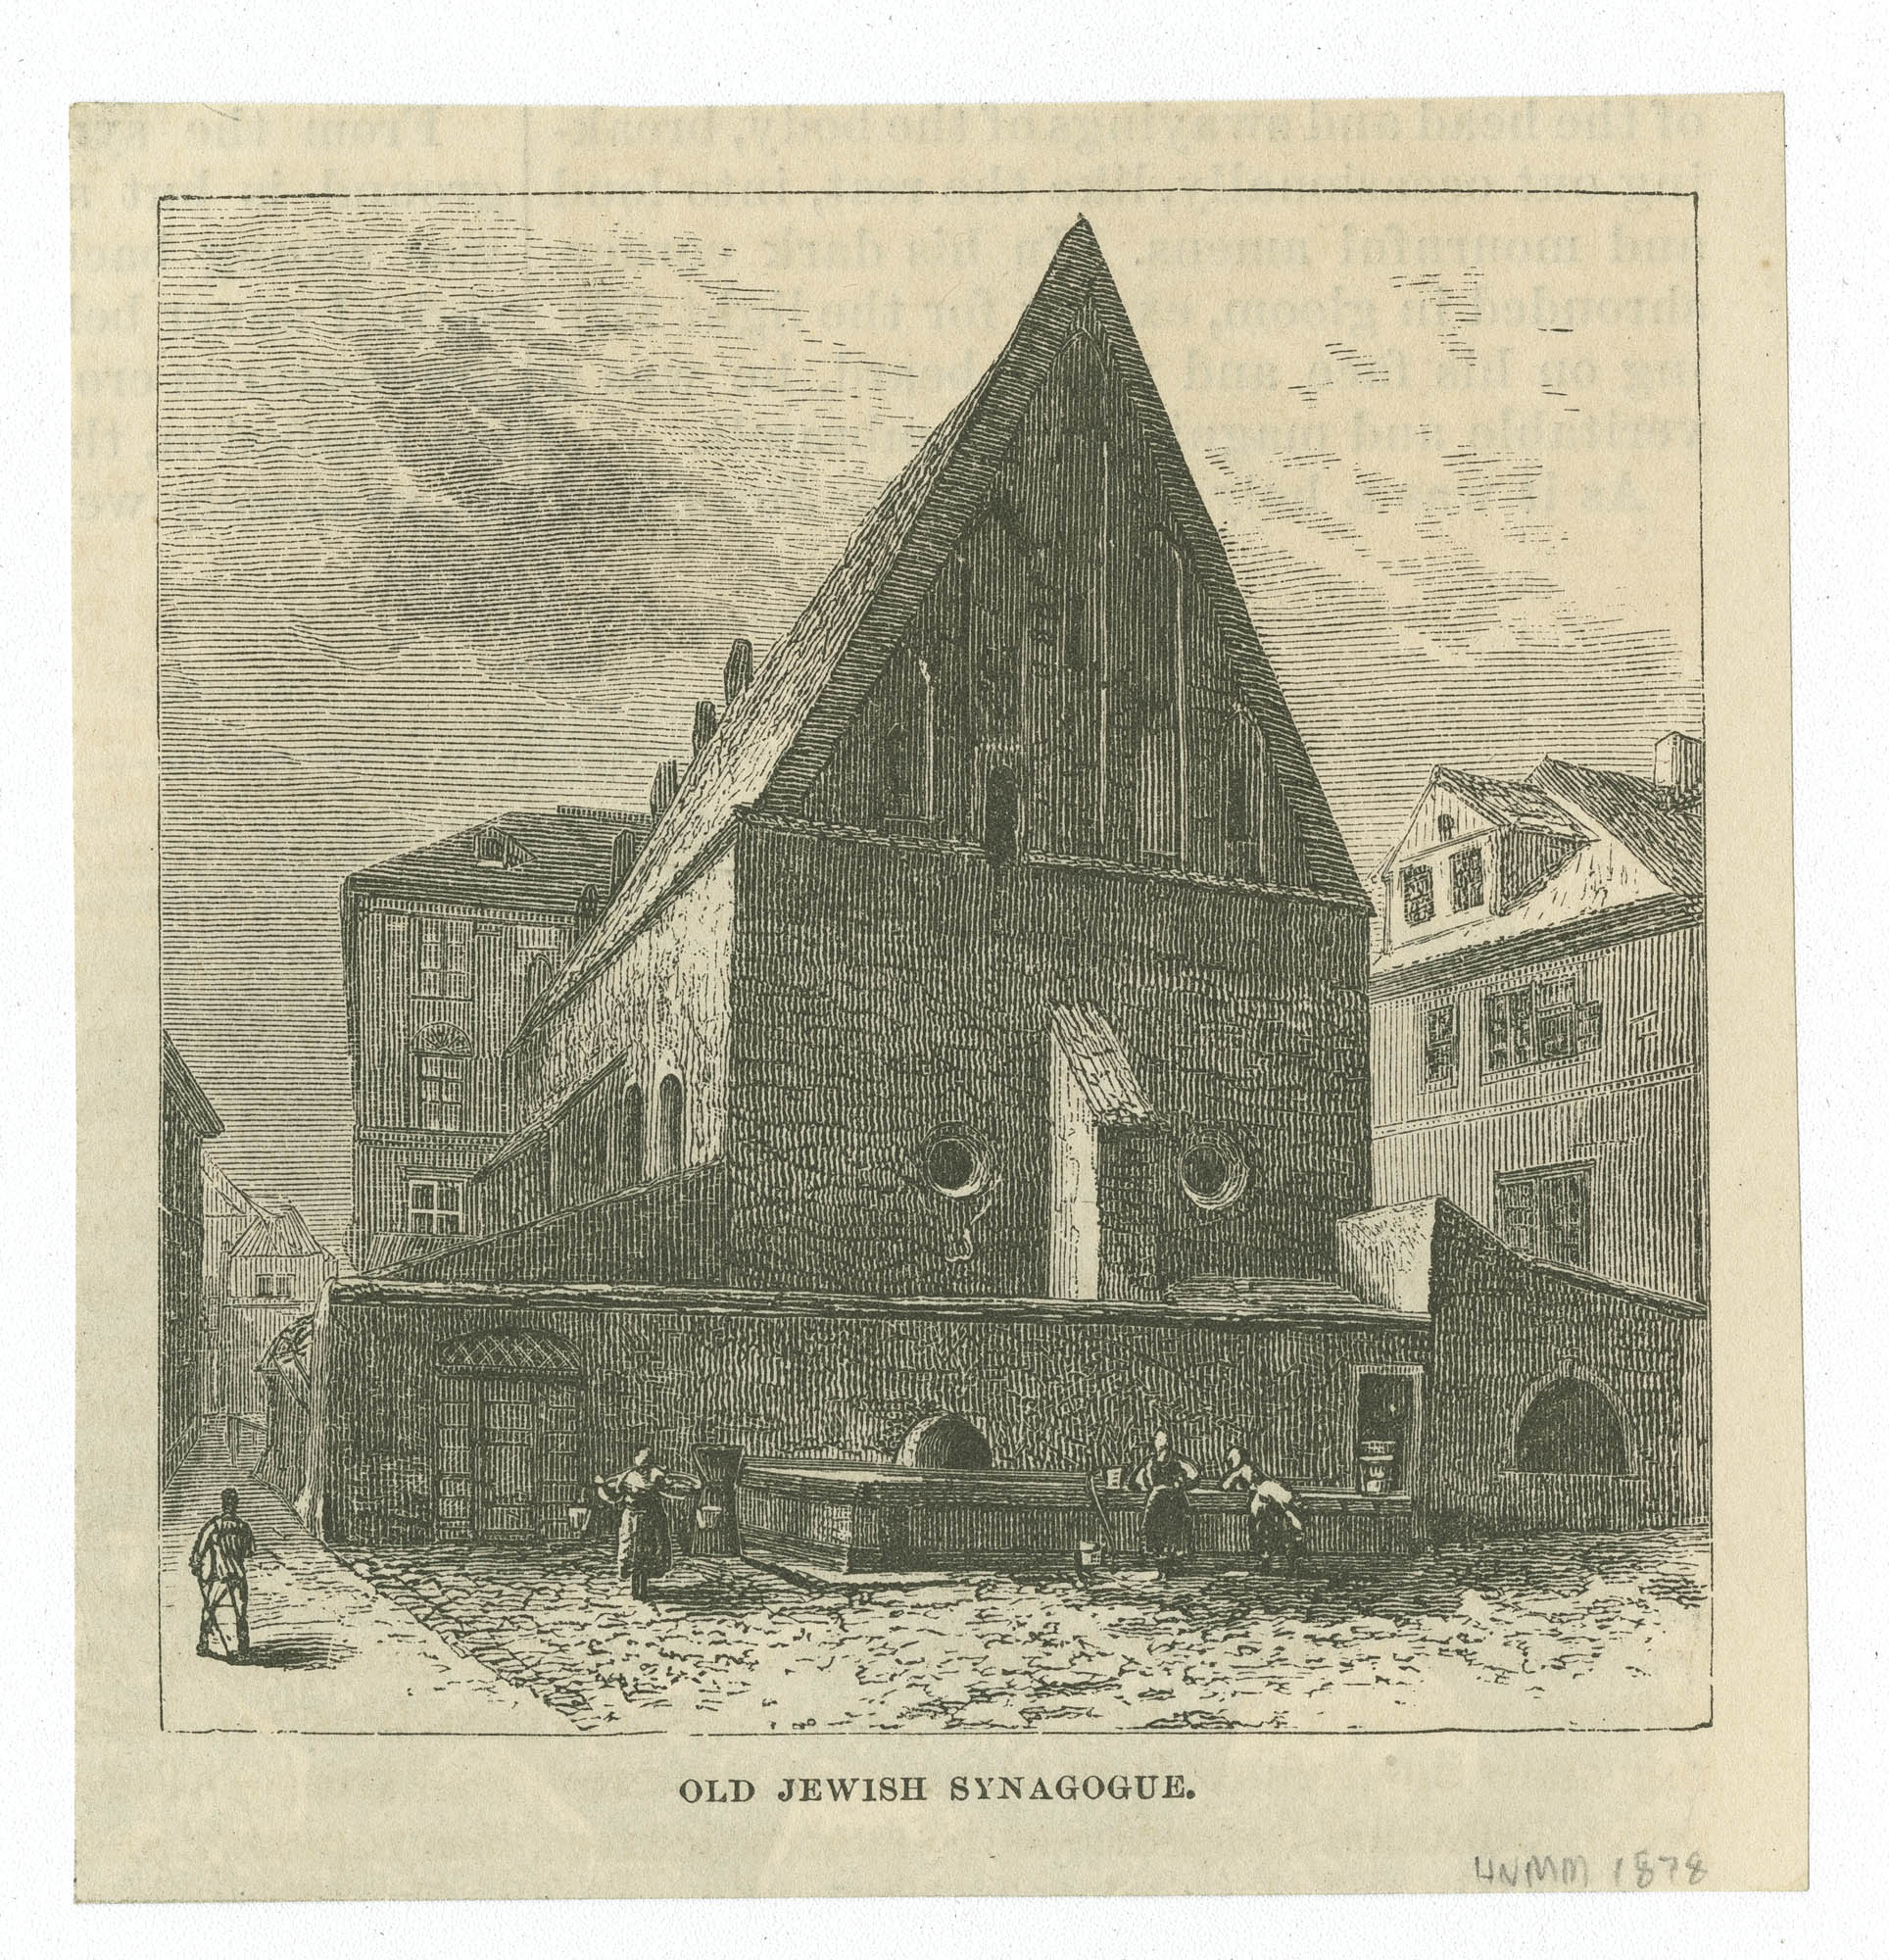 Old Jewish Synagogue